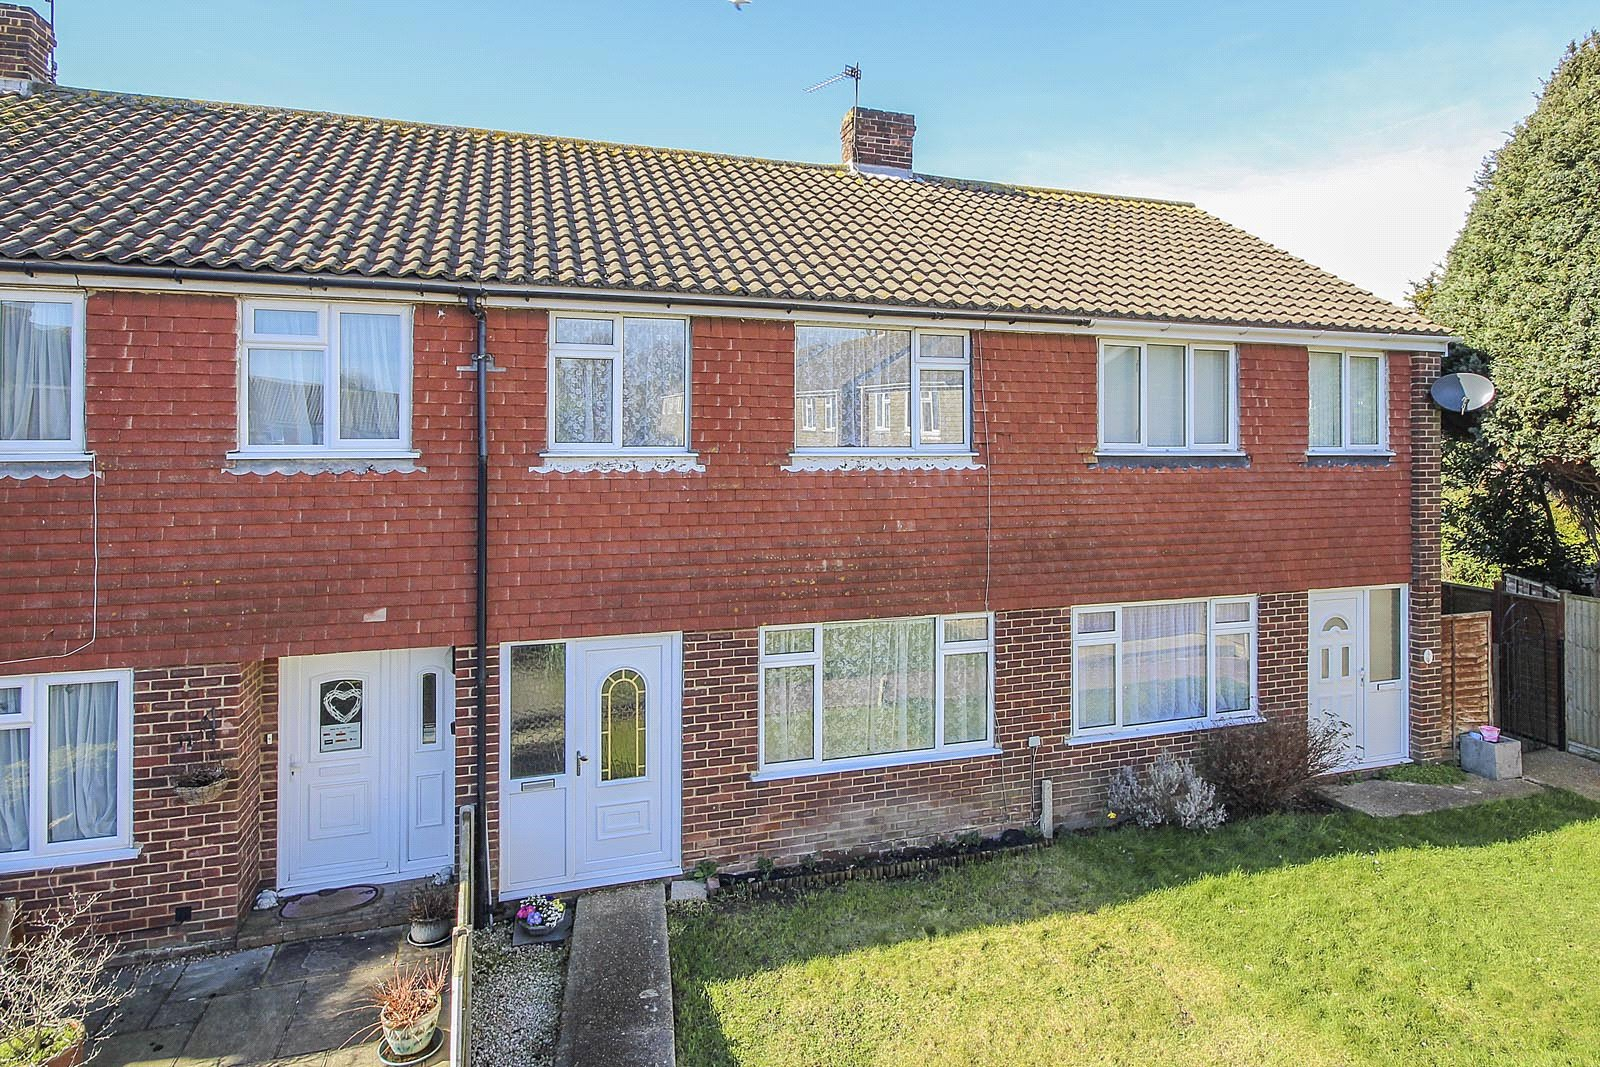 3 bed house for sale in Barnsite Close, Rustington  - Property Image 1